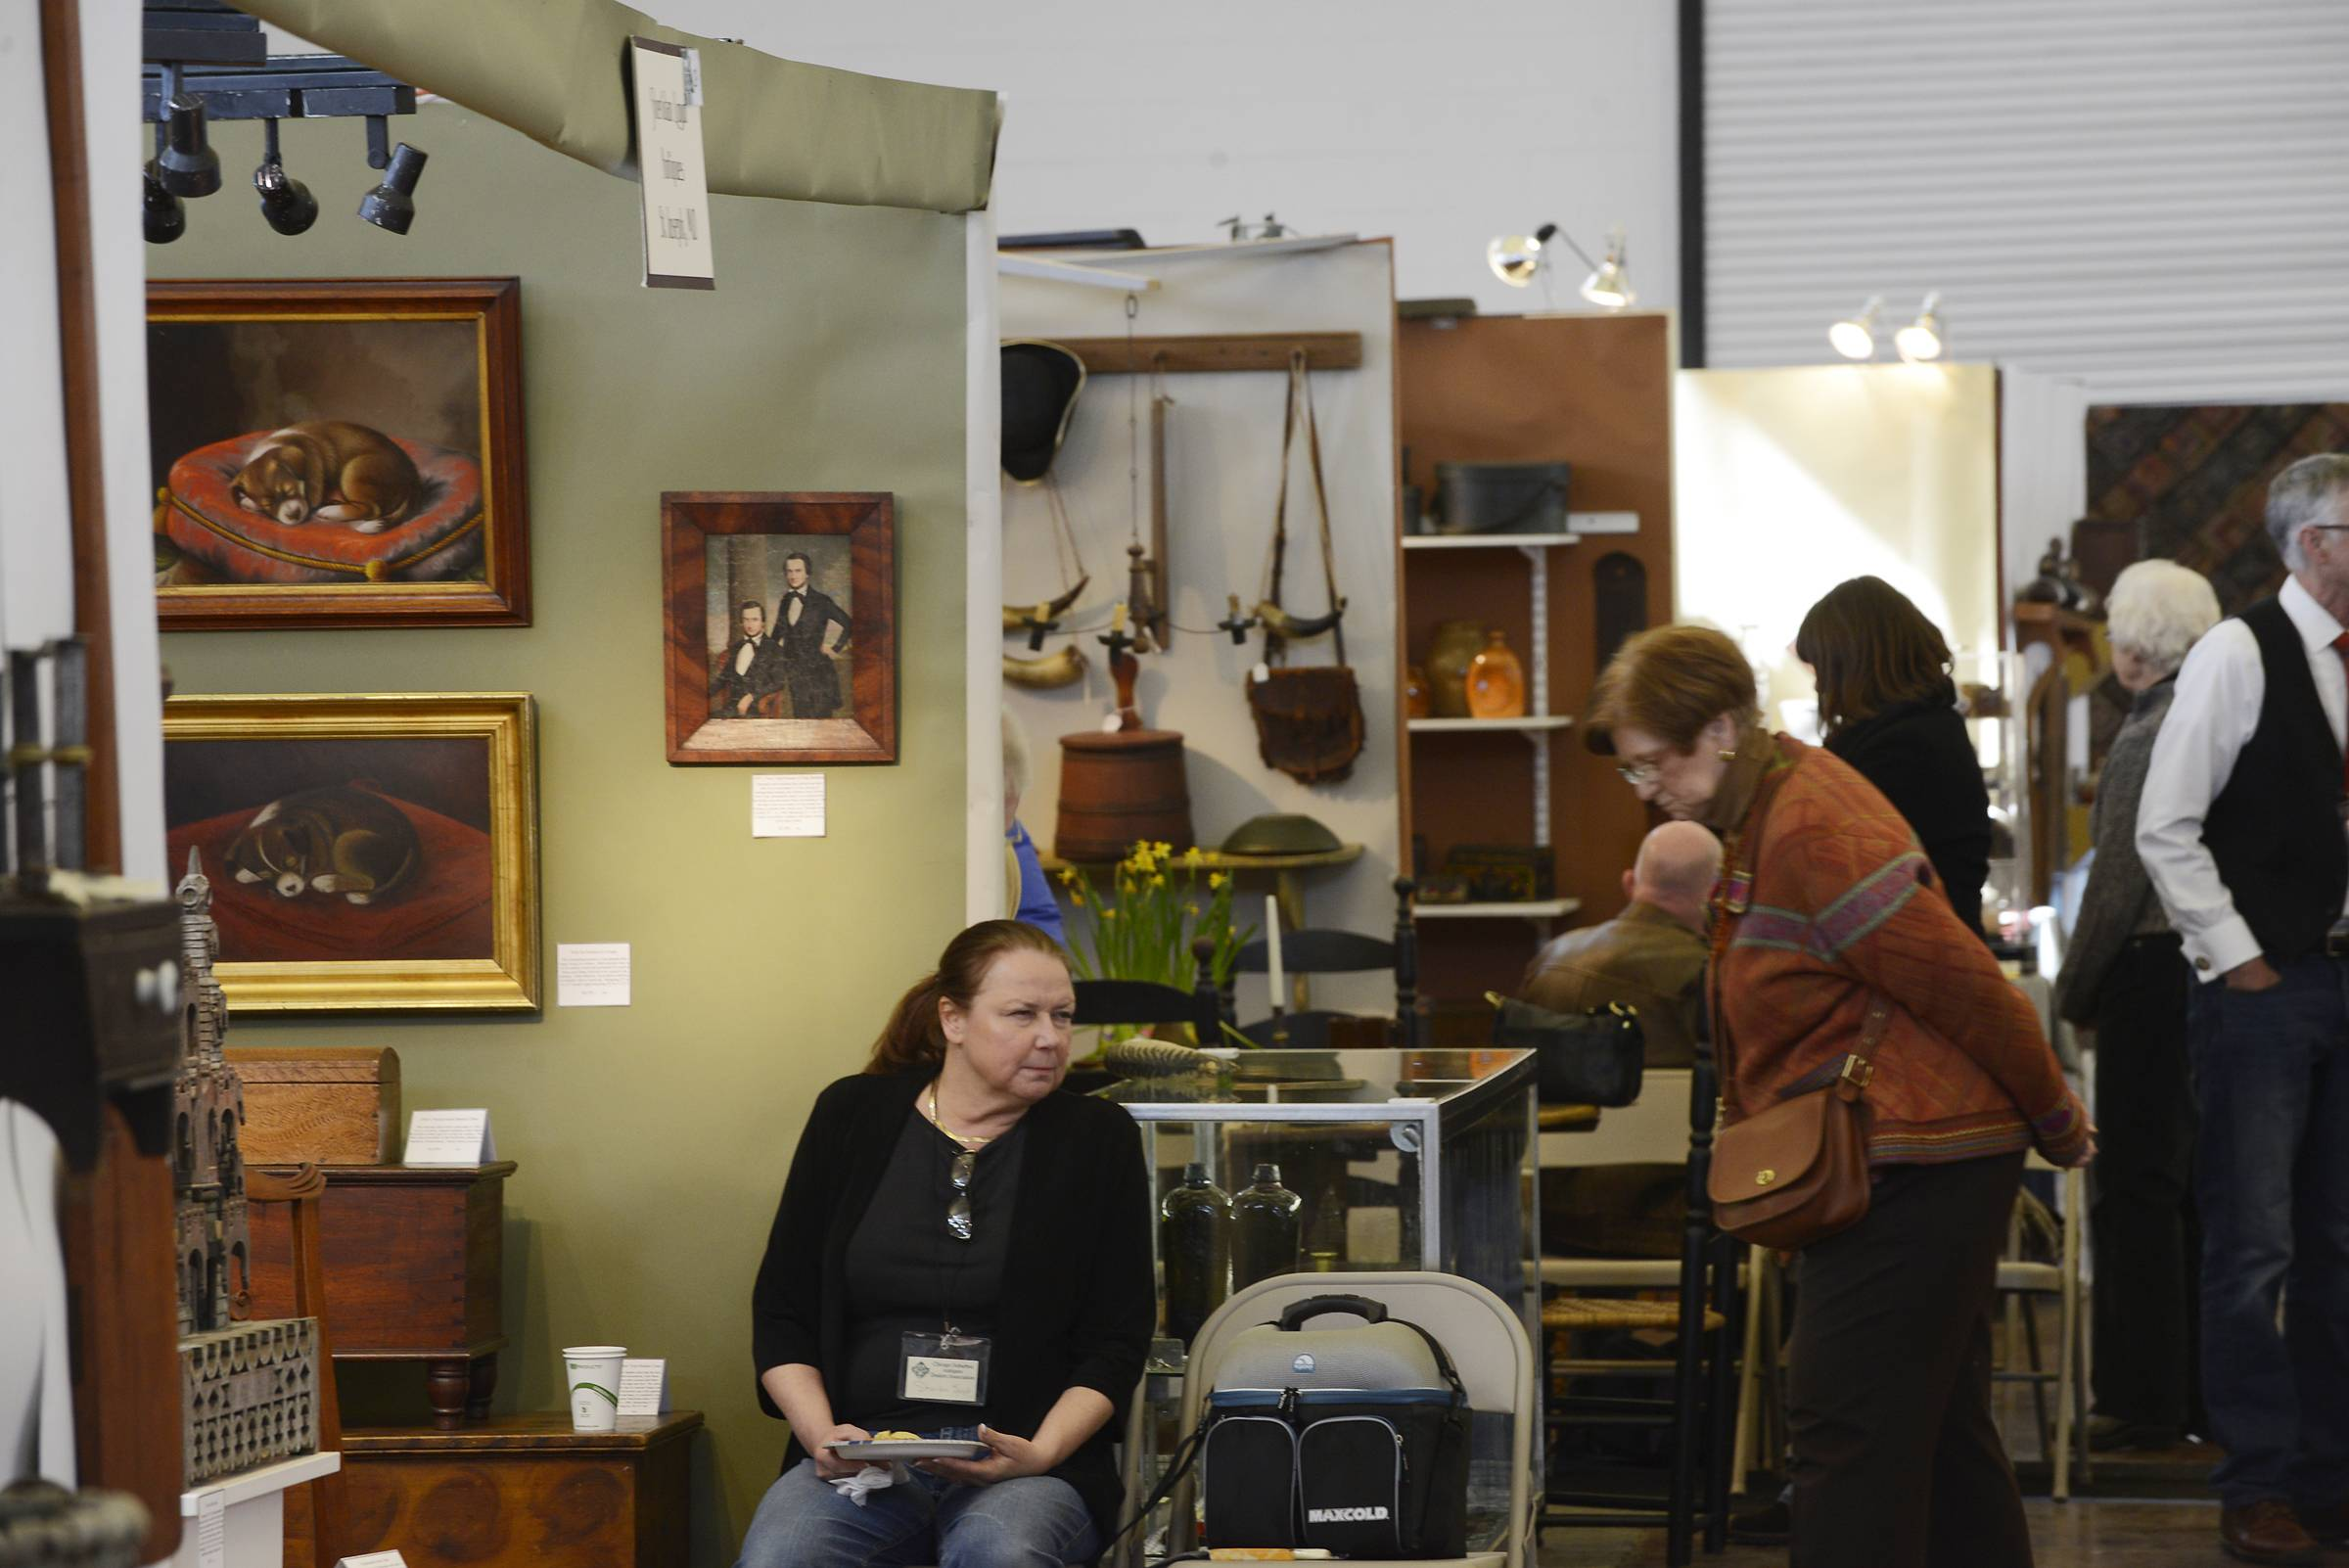 Antiques shoppers take their time to visit the 55 booths at the 57th Fox Valley Antiques Show on Sunday at the Kane County Fairgrounds in St. Charles. The show benefitted the Garfield Farm and Museum in St. Charles.